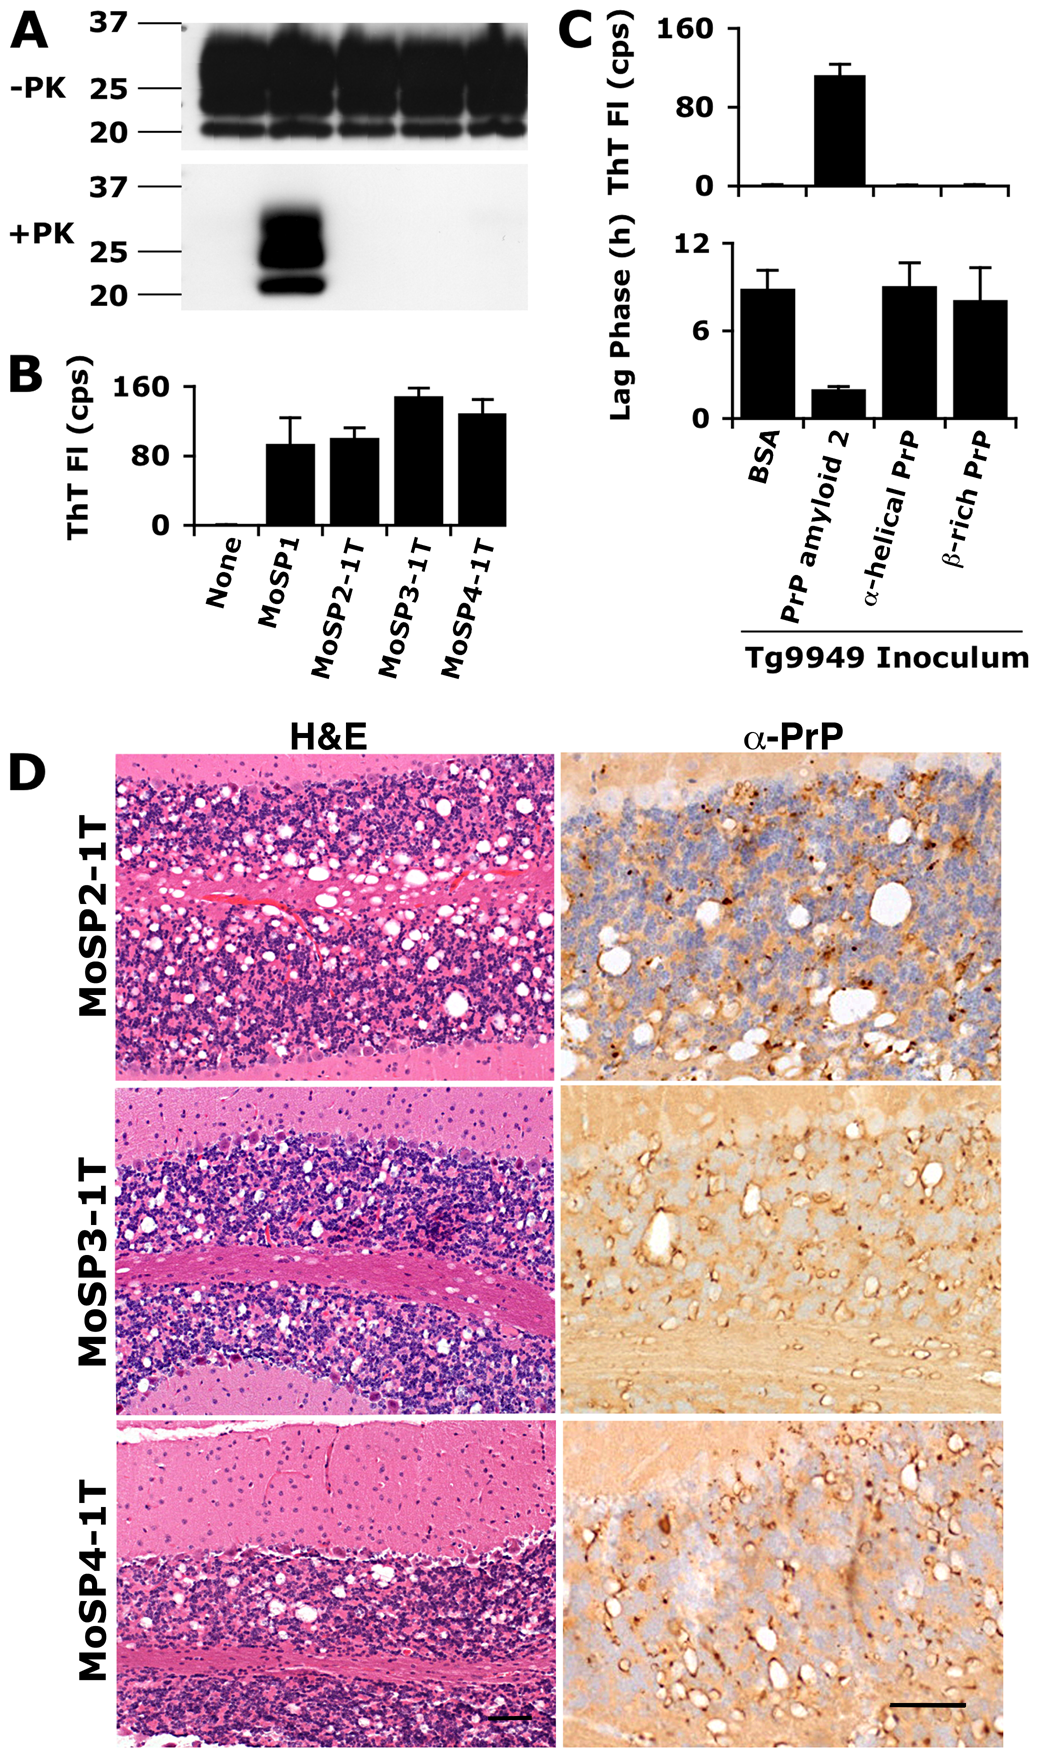 Inoculation of Tg9949 mice with PrP amyloid, but not other PrP conformations, results in the generation of prions.